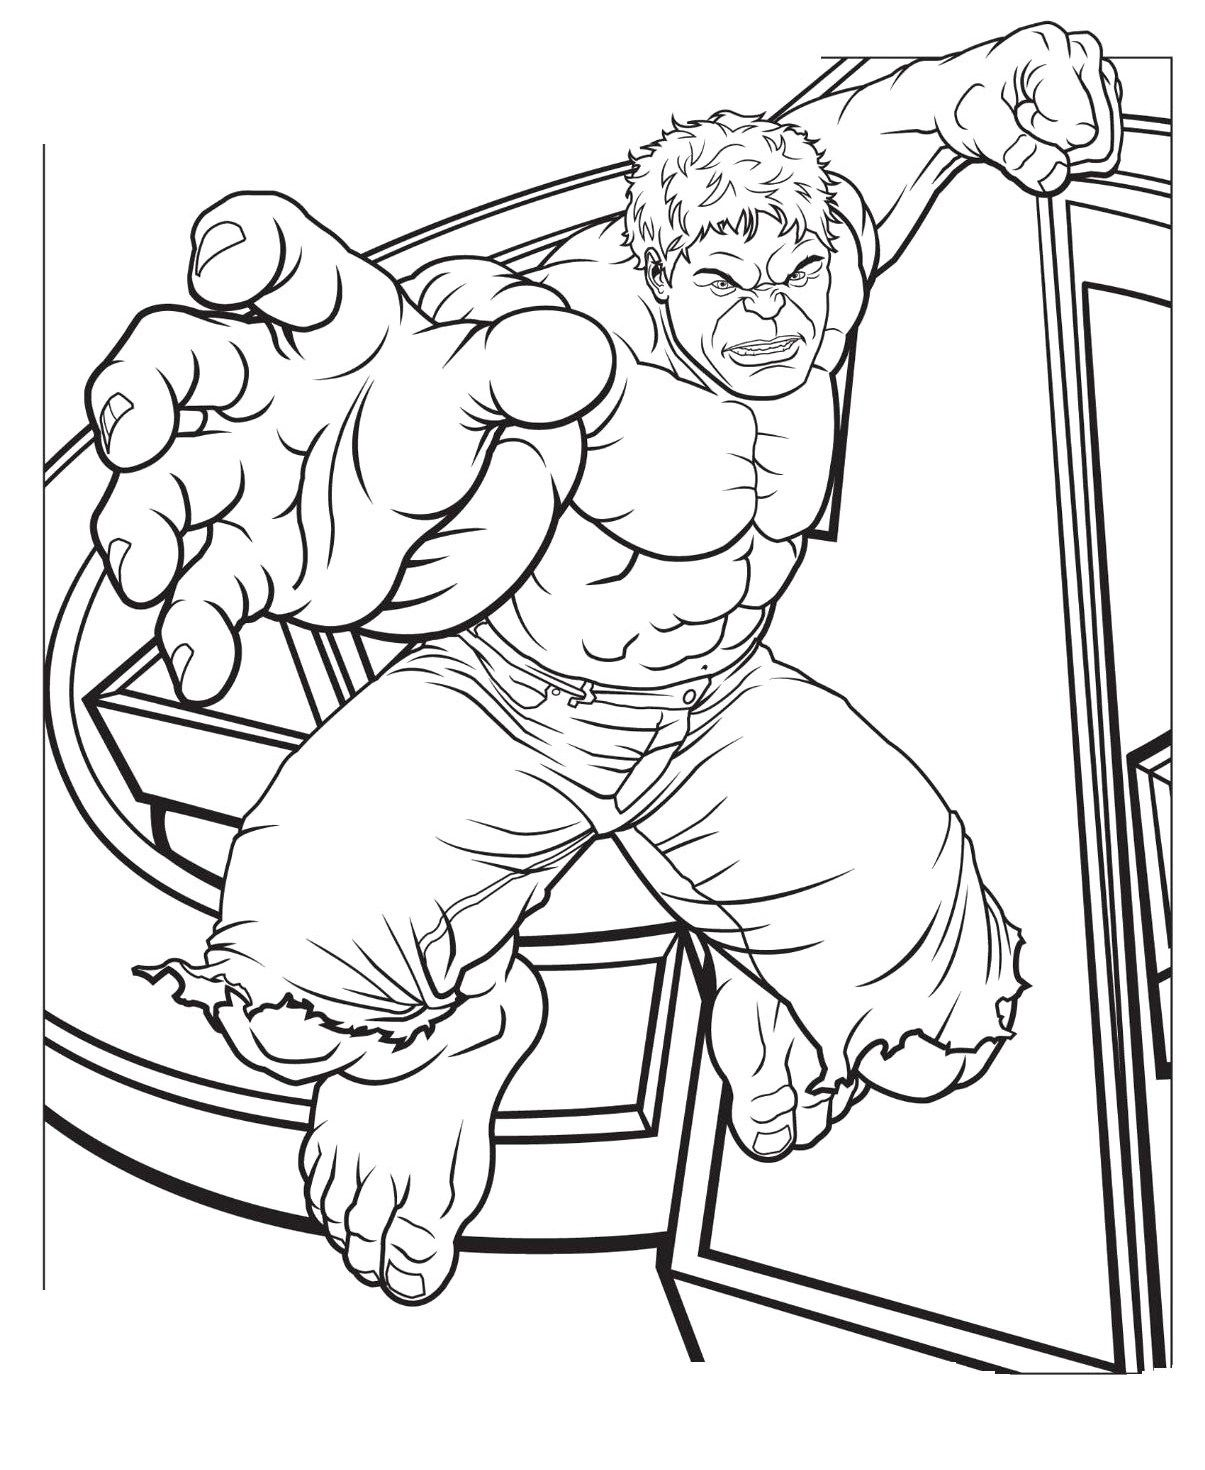 Avengers Nick Fury Coloring Pages Free Coloring Pages Download ...